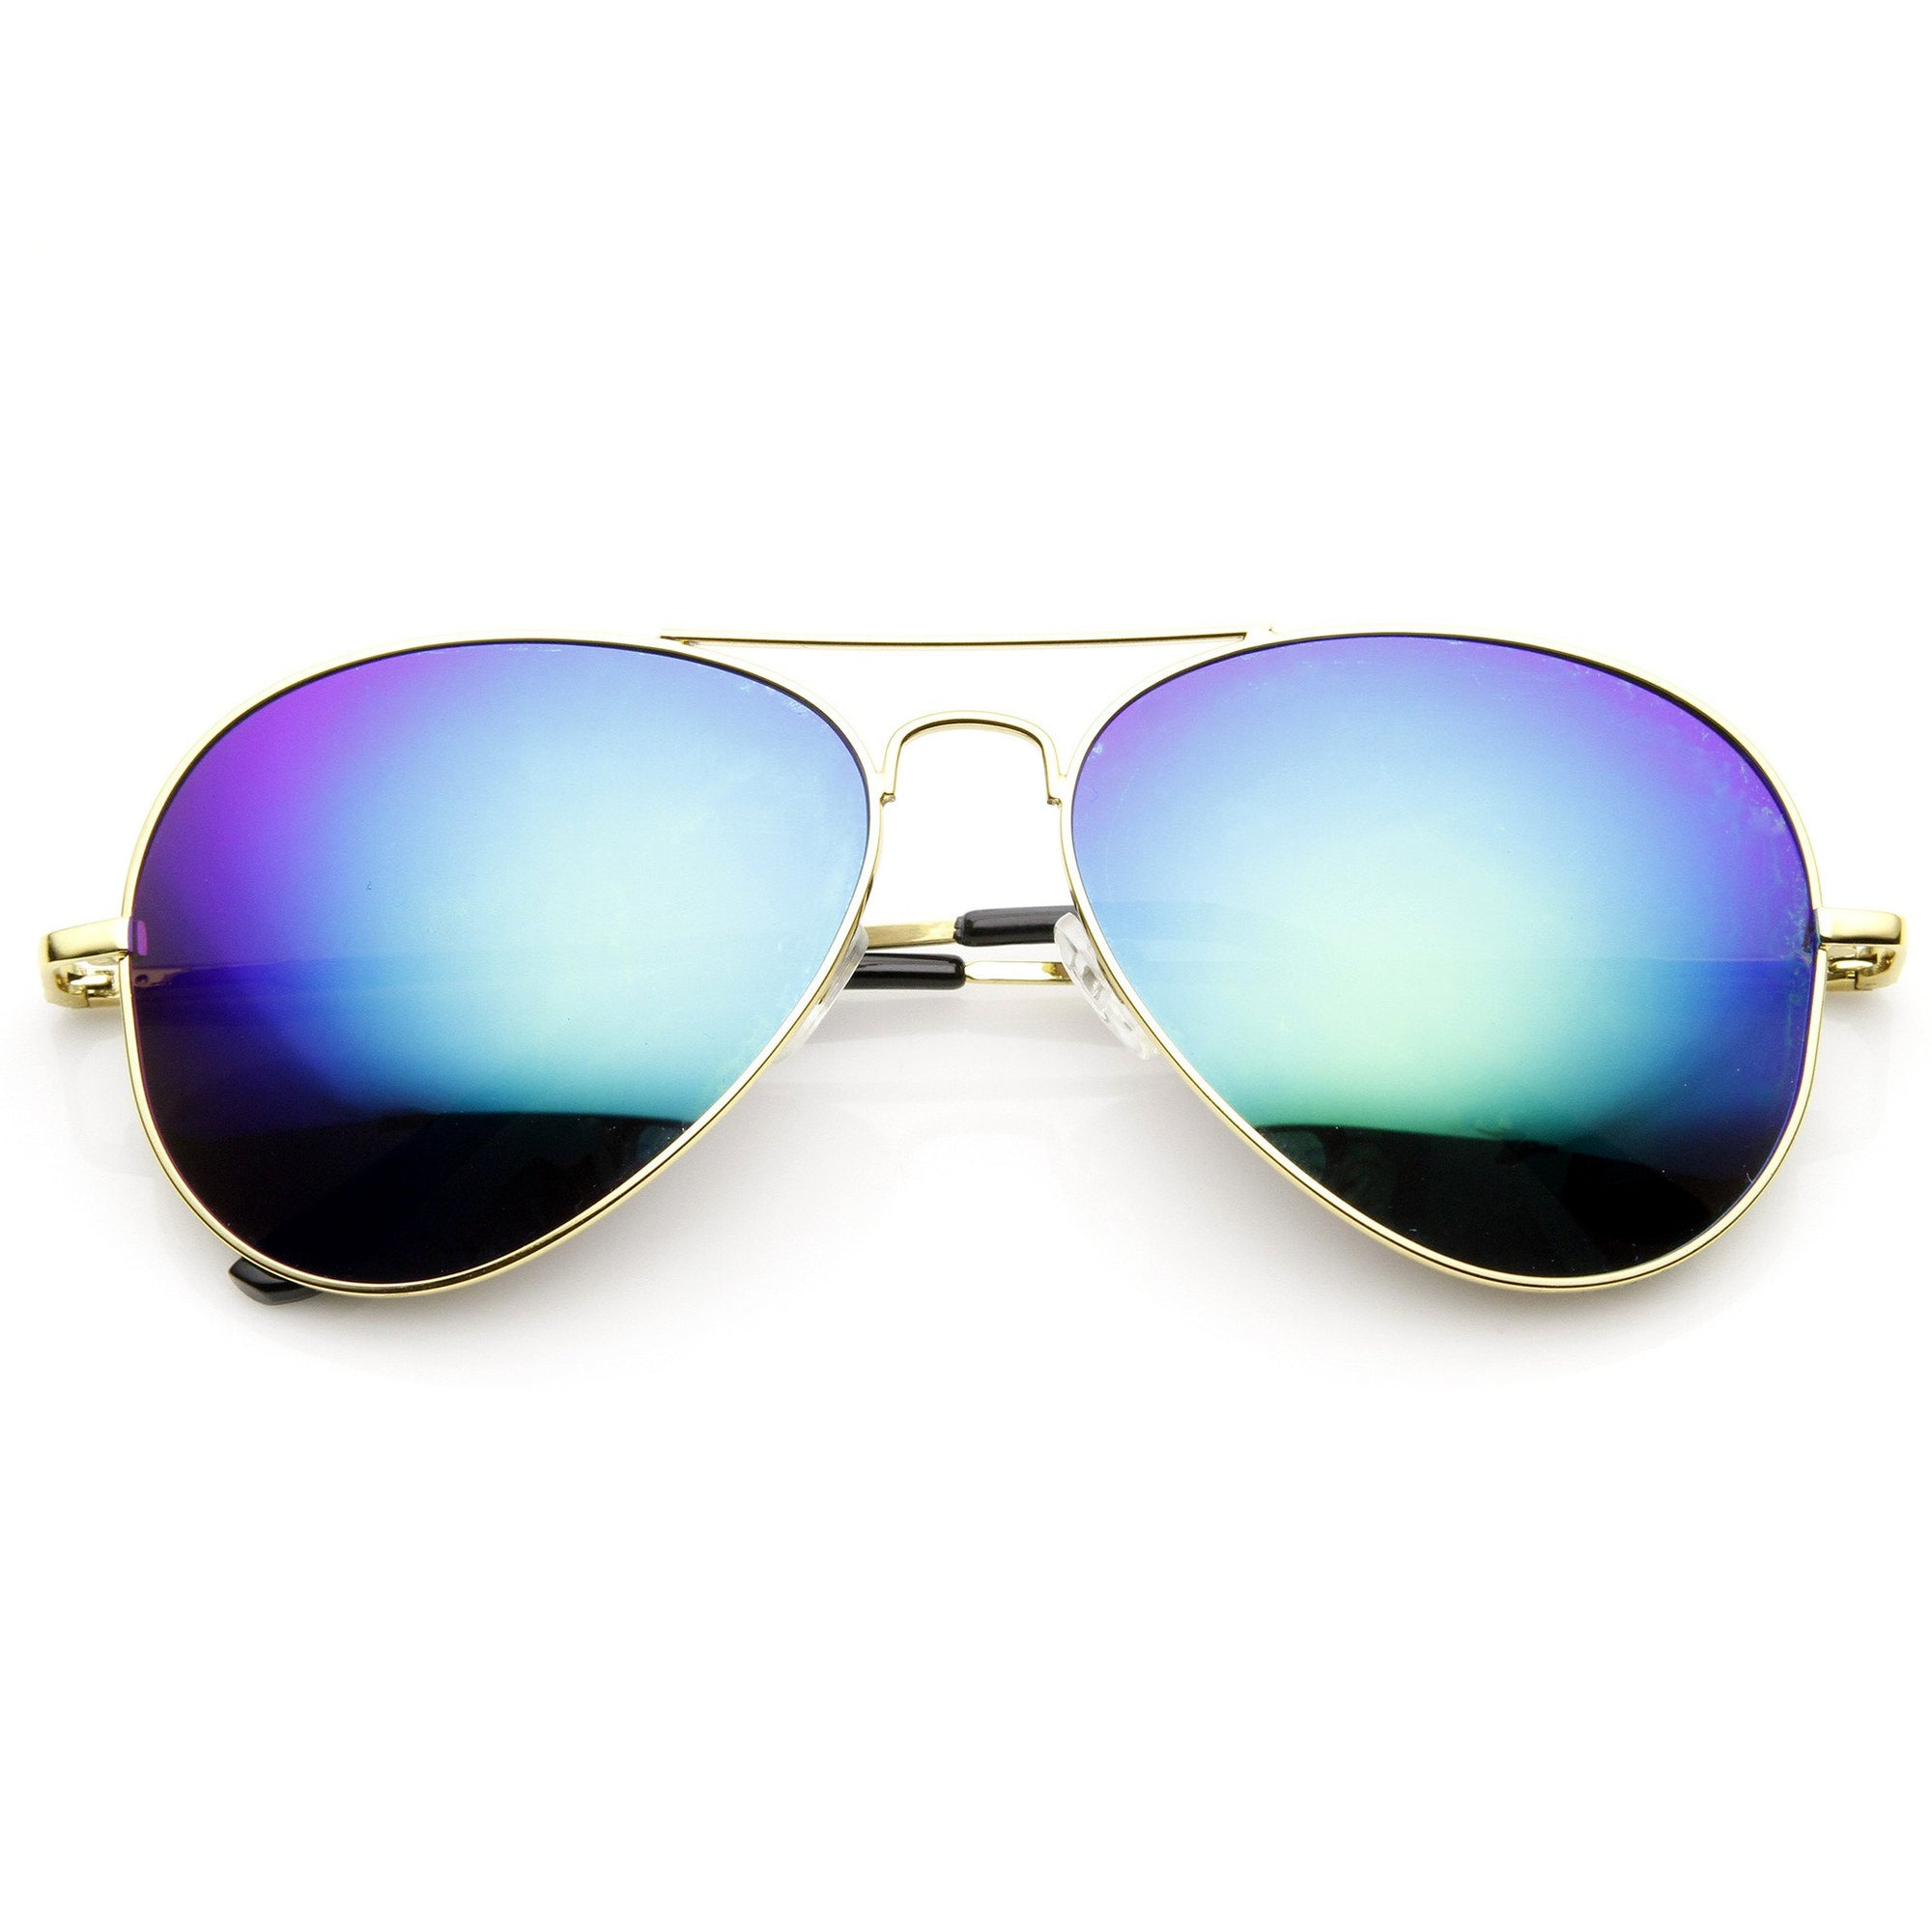 657f72d2ac2 Zerouv Full Gold Frame Flash Color Mirrored Lens Sunglasses 1486